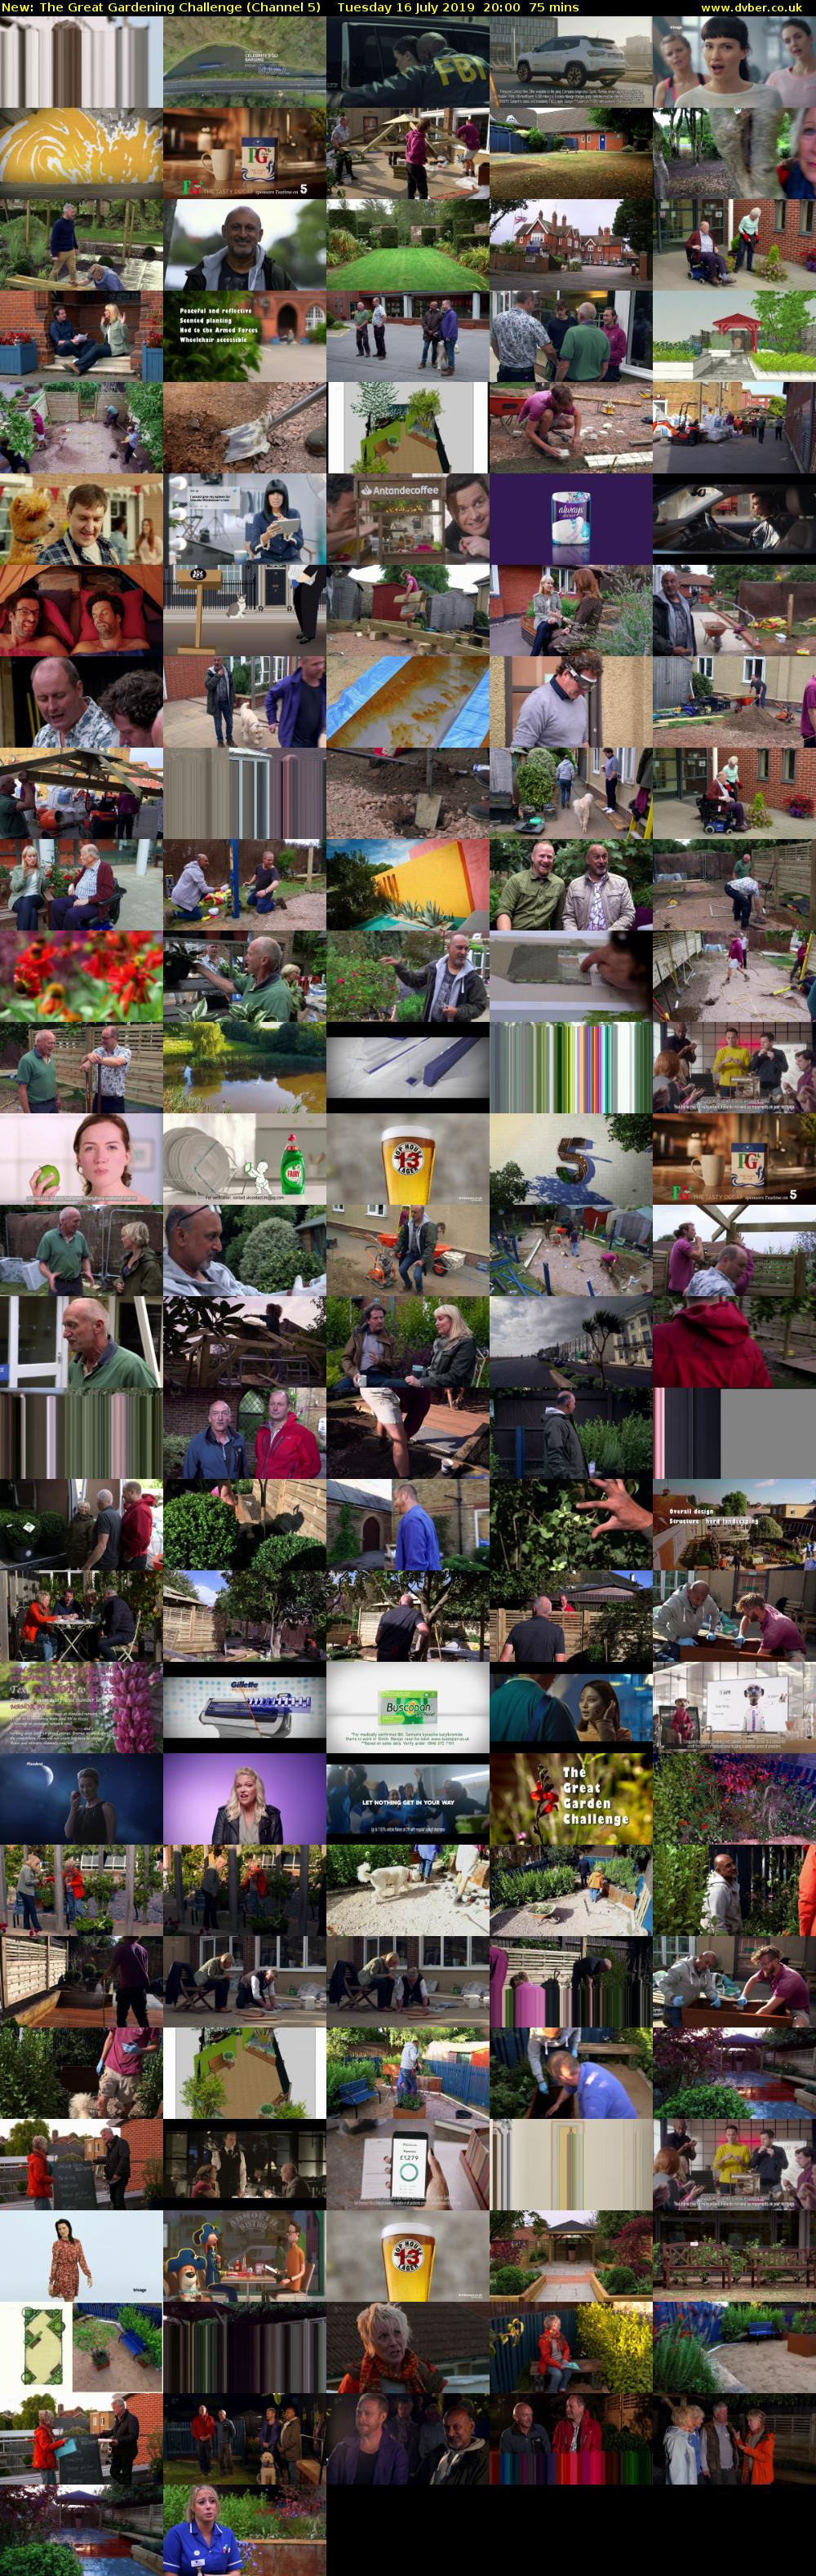 The Great Gardening Challenge (Channel 5) Tuesday 16 July 2019 20:00 - 21:15